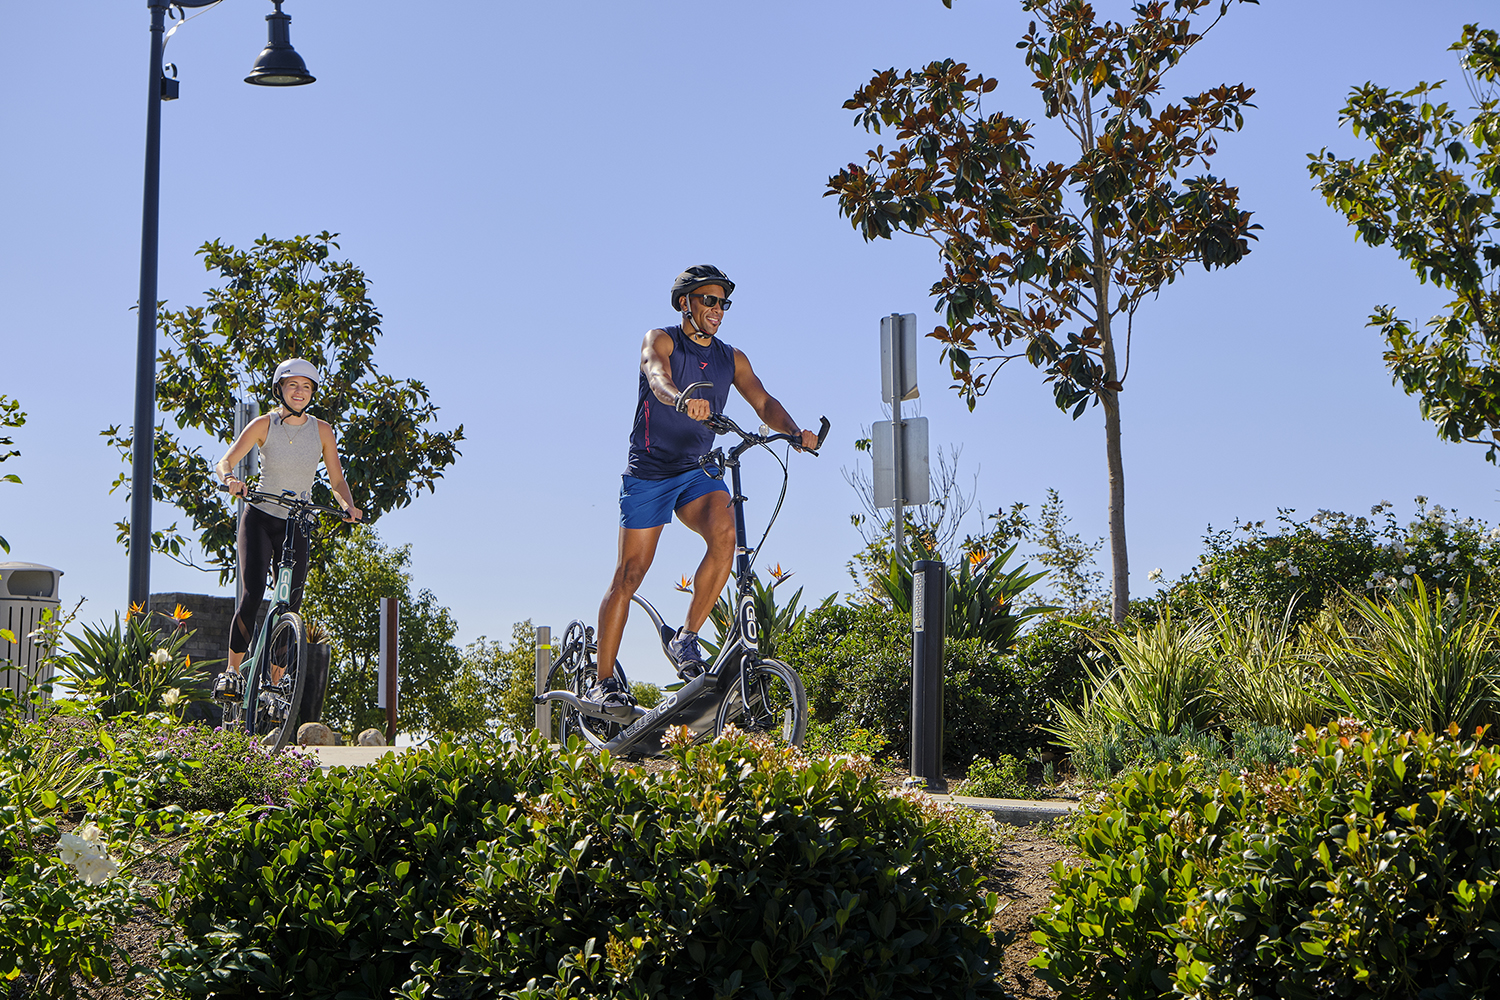 Two ElliptiGO riders, a girl on RSUB and a male on Long-Stride bike